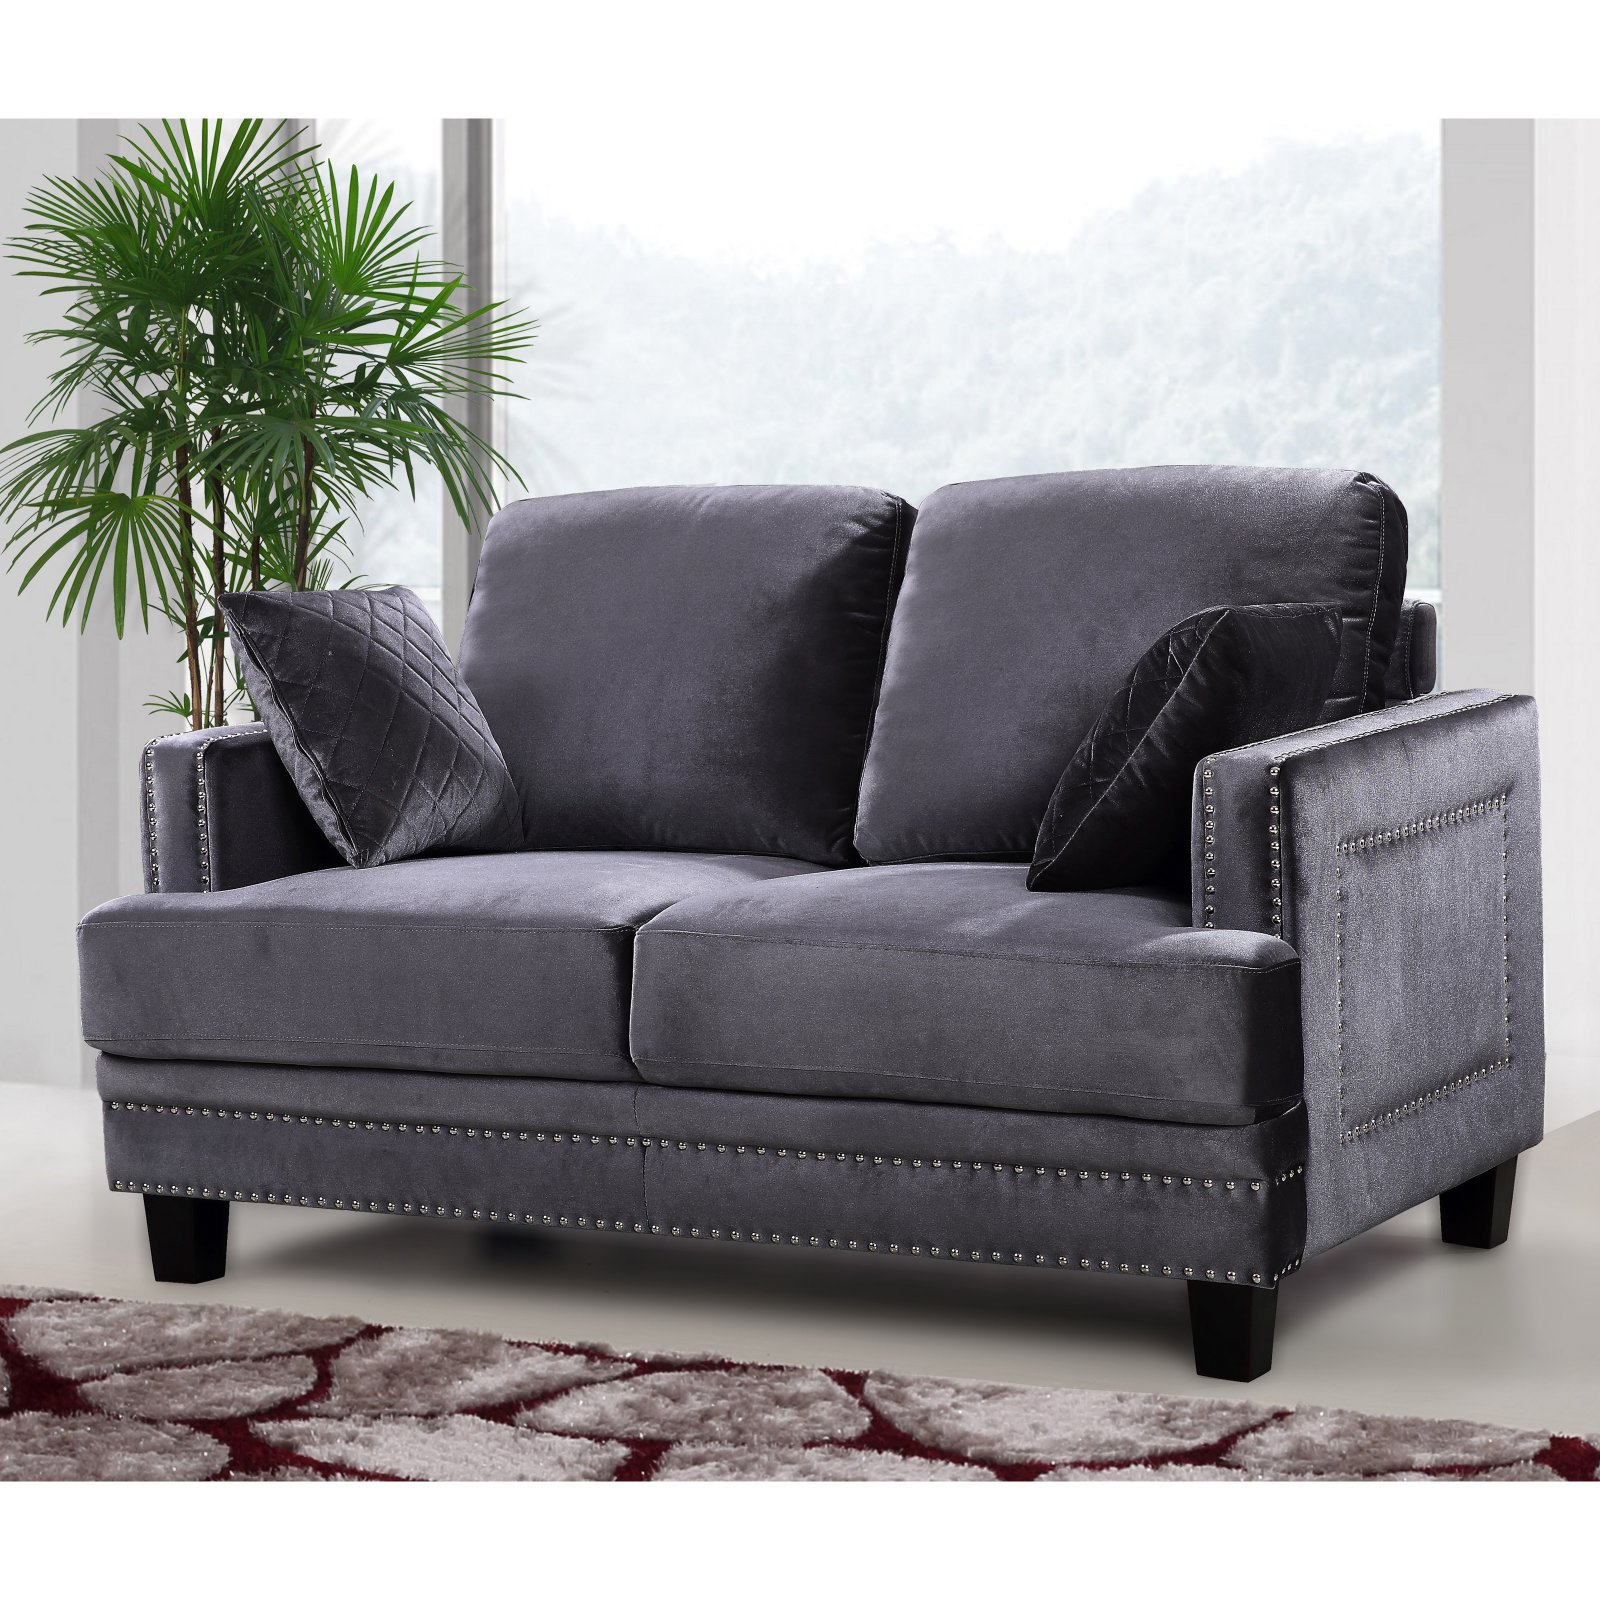 Meridian Furniture Inc Ferrara Loveseat with Toss Pillows